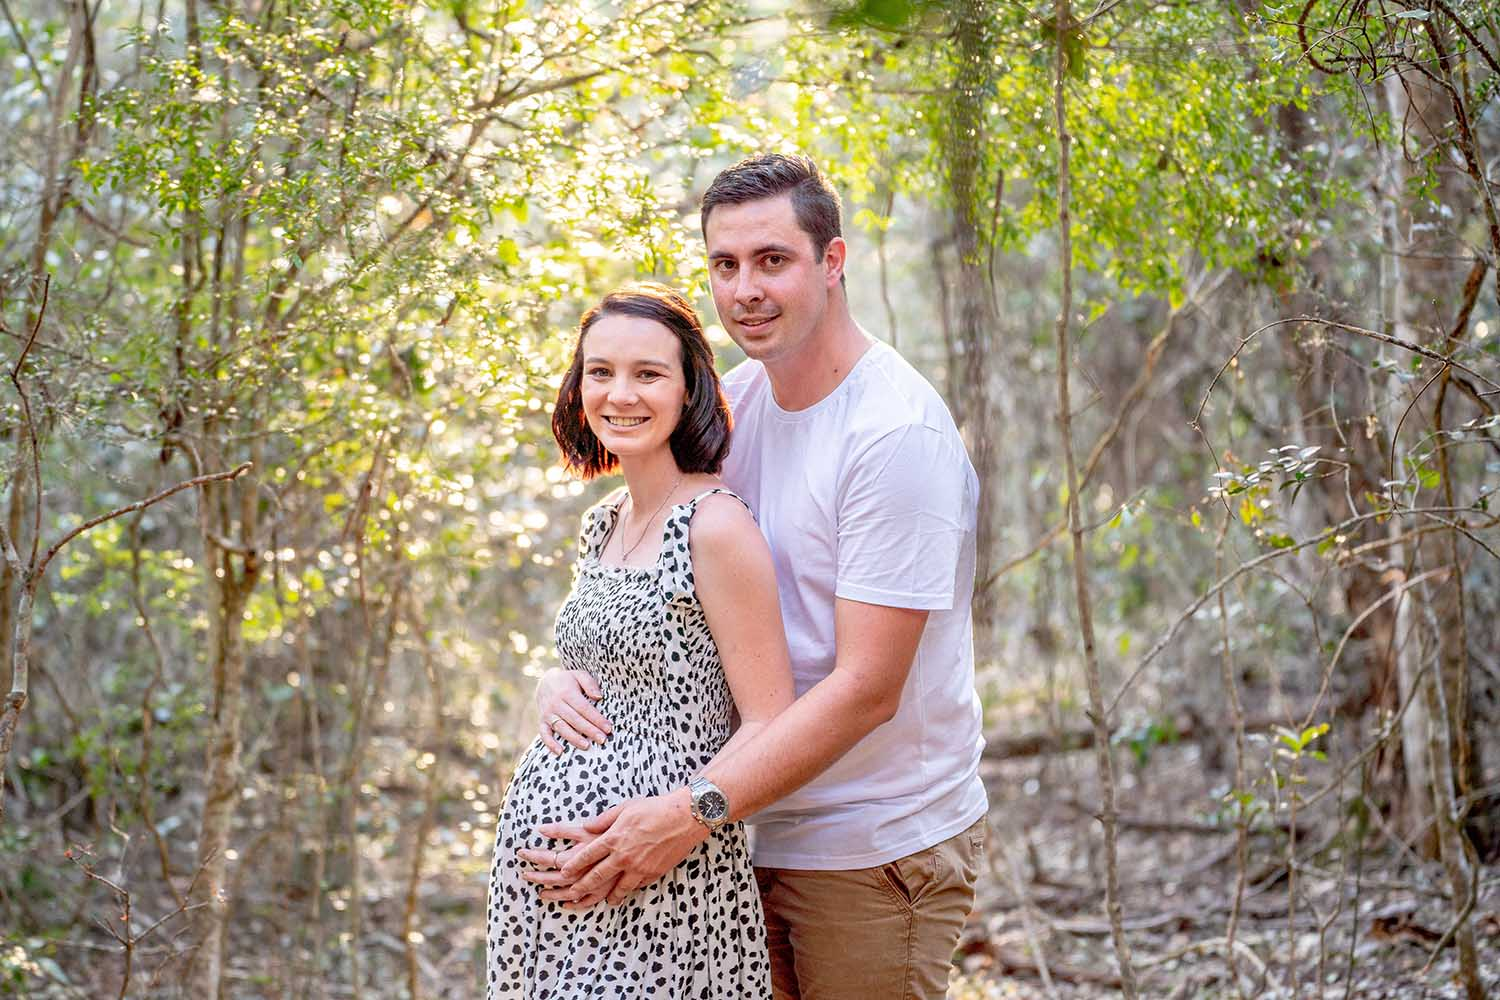 Maternity Photography - Embracing